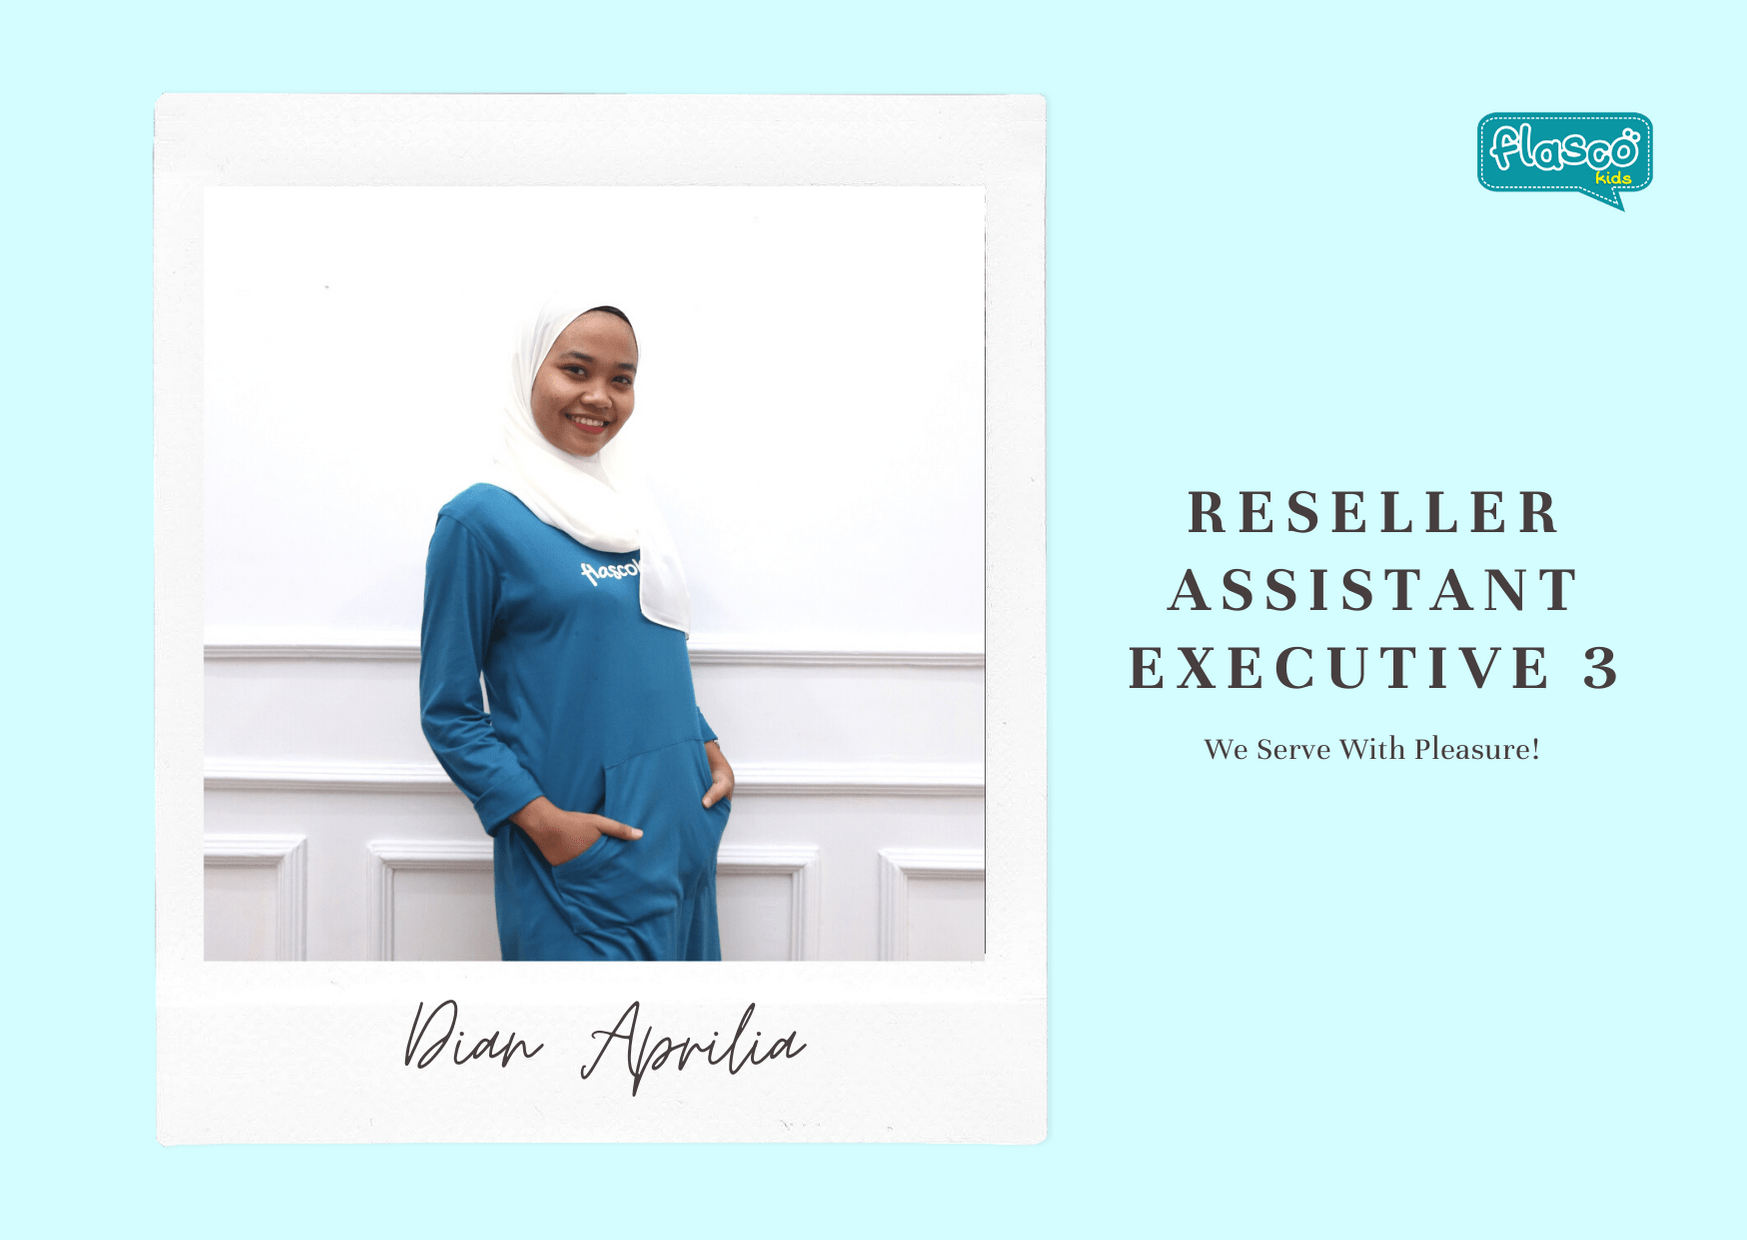 reseller assistant executive 3 flascokids